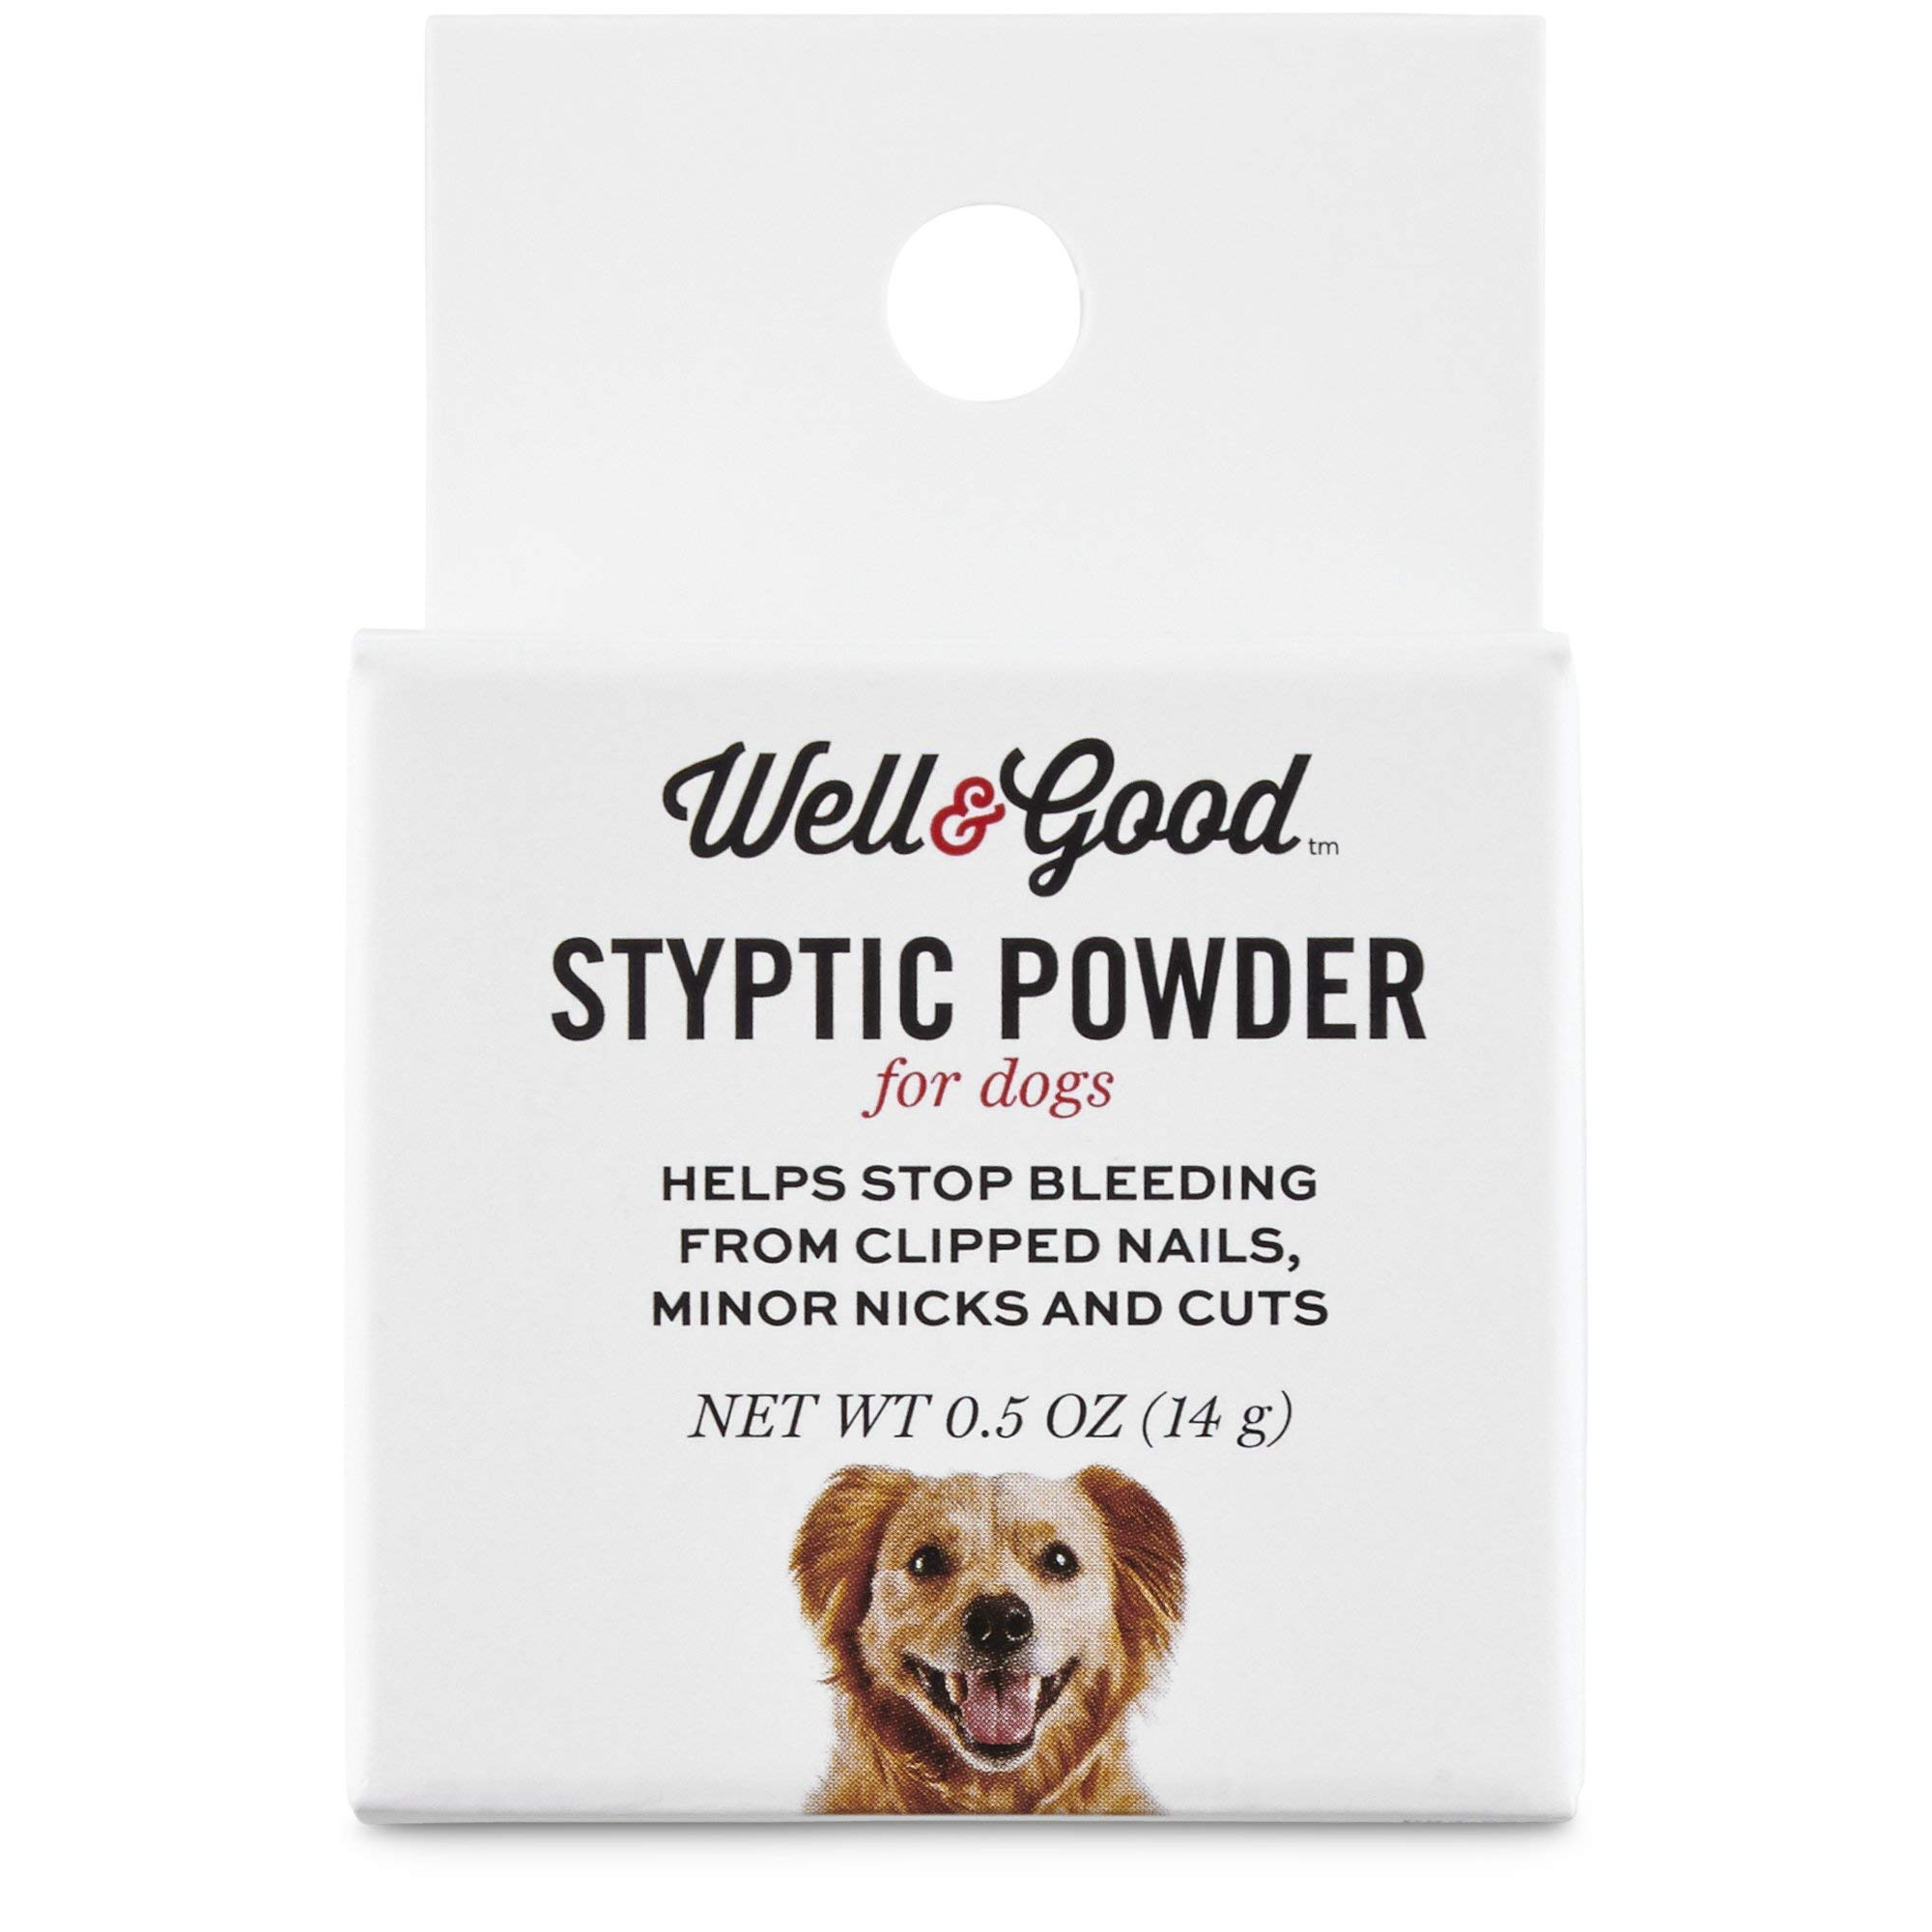 Well & Good Styptic Powder for Dogs, 0.5 OZ by Well & Good